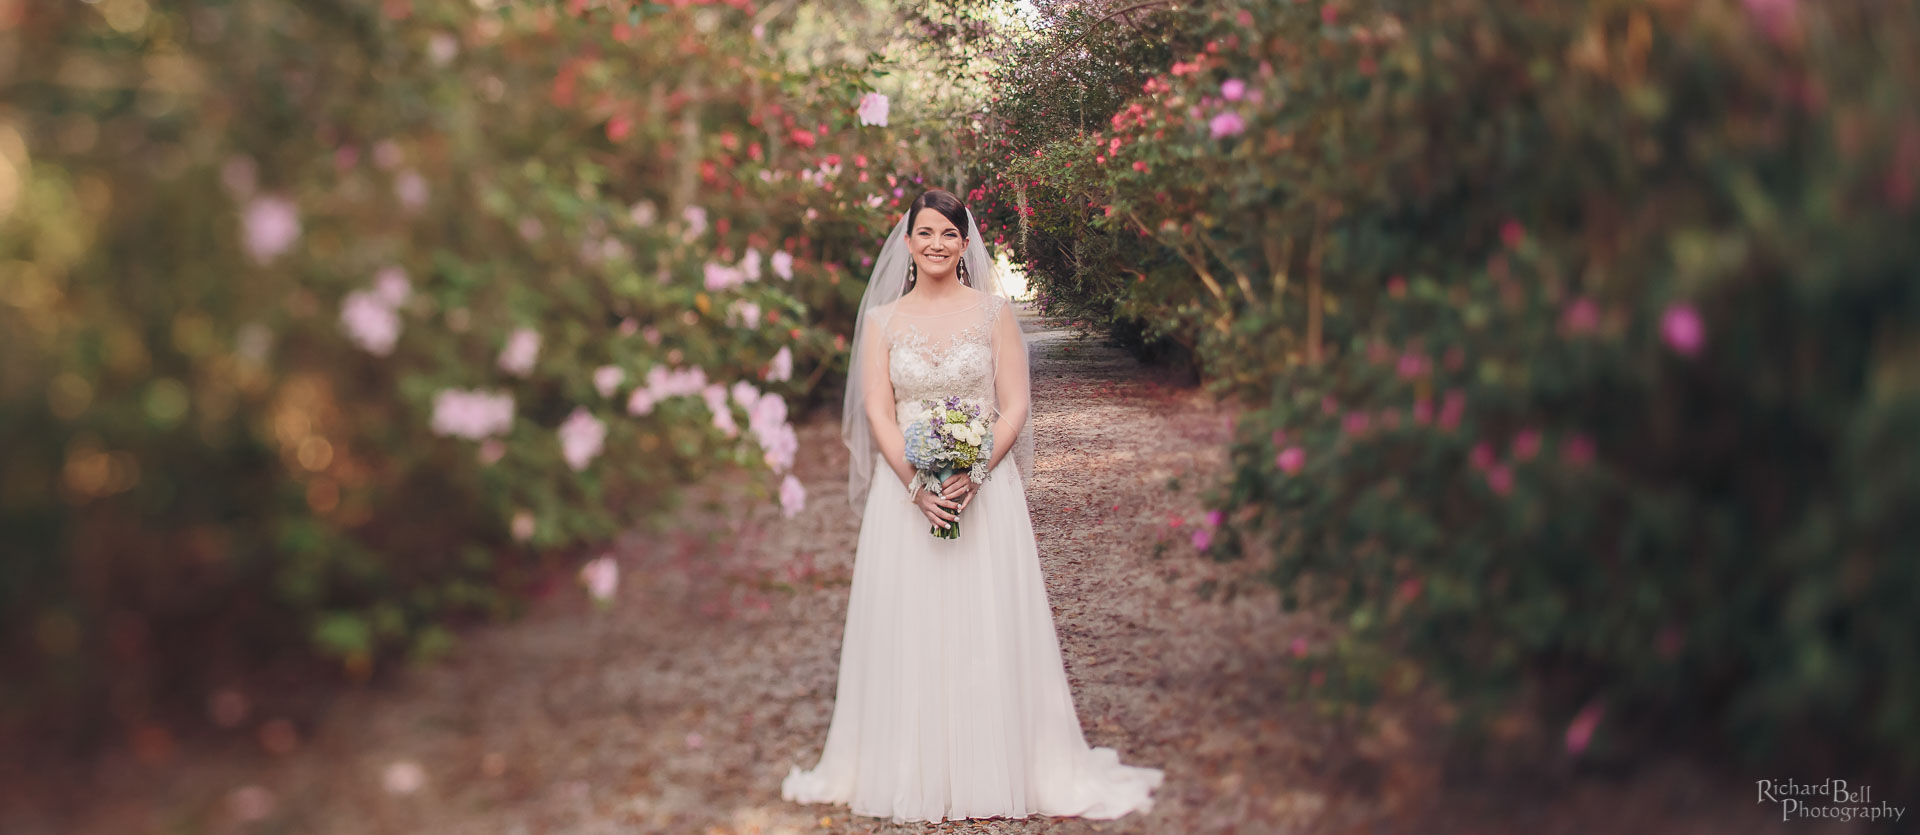 Bride at Magnolia Plantation